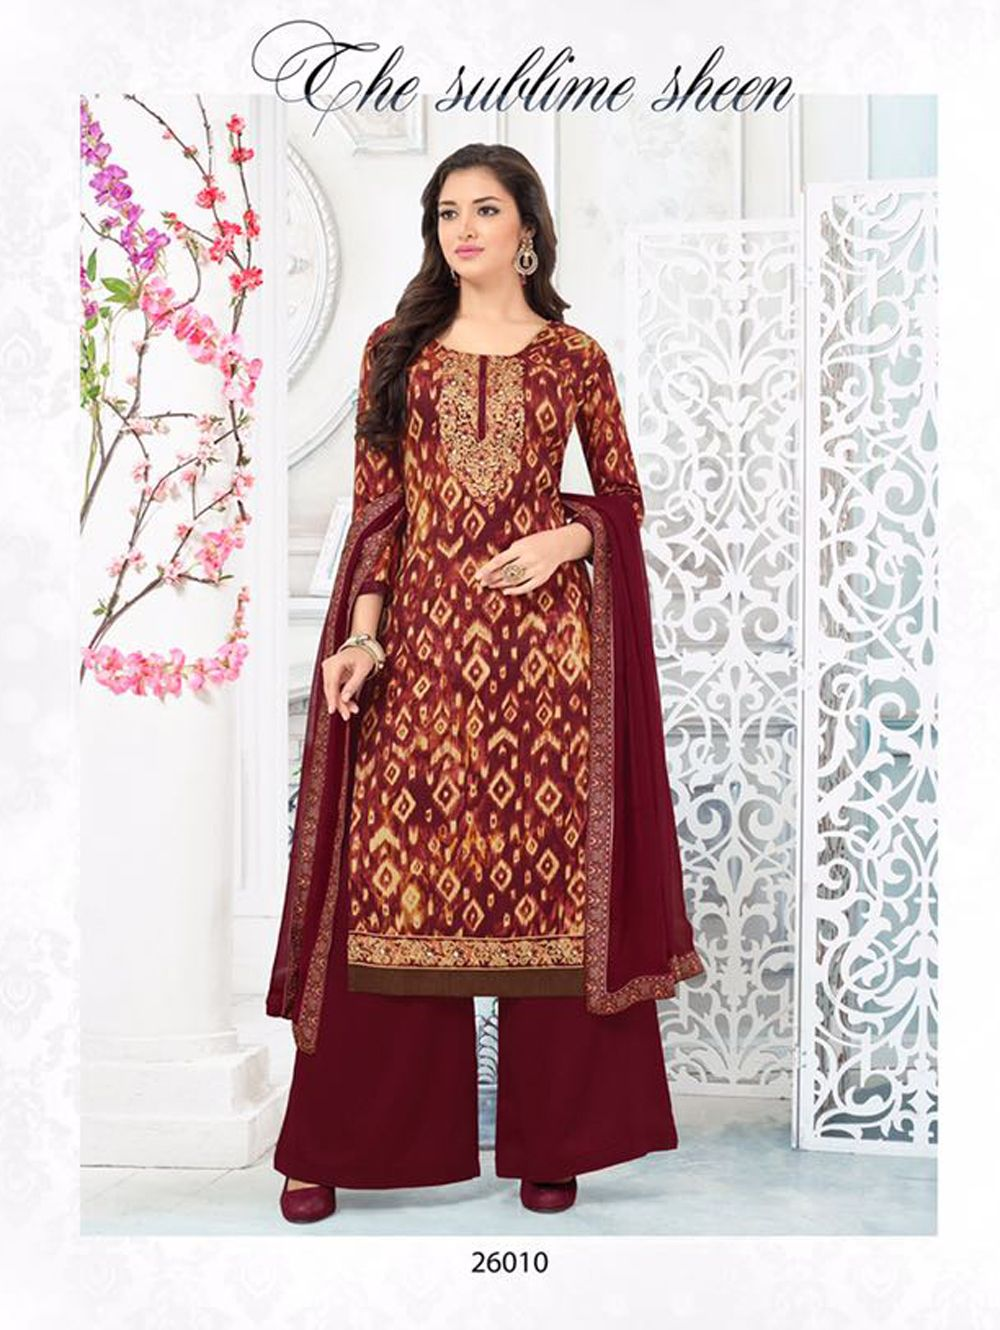 85ecb495c307c Maroon Exclusive Latest Plazo Suit Online Shopping Stores